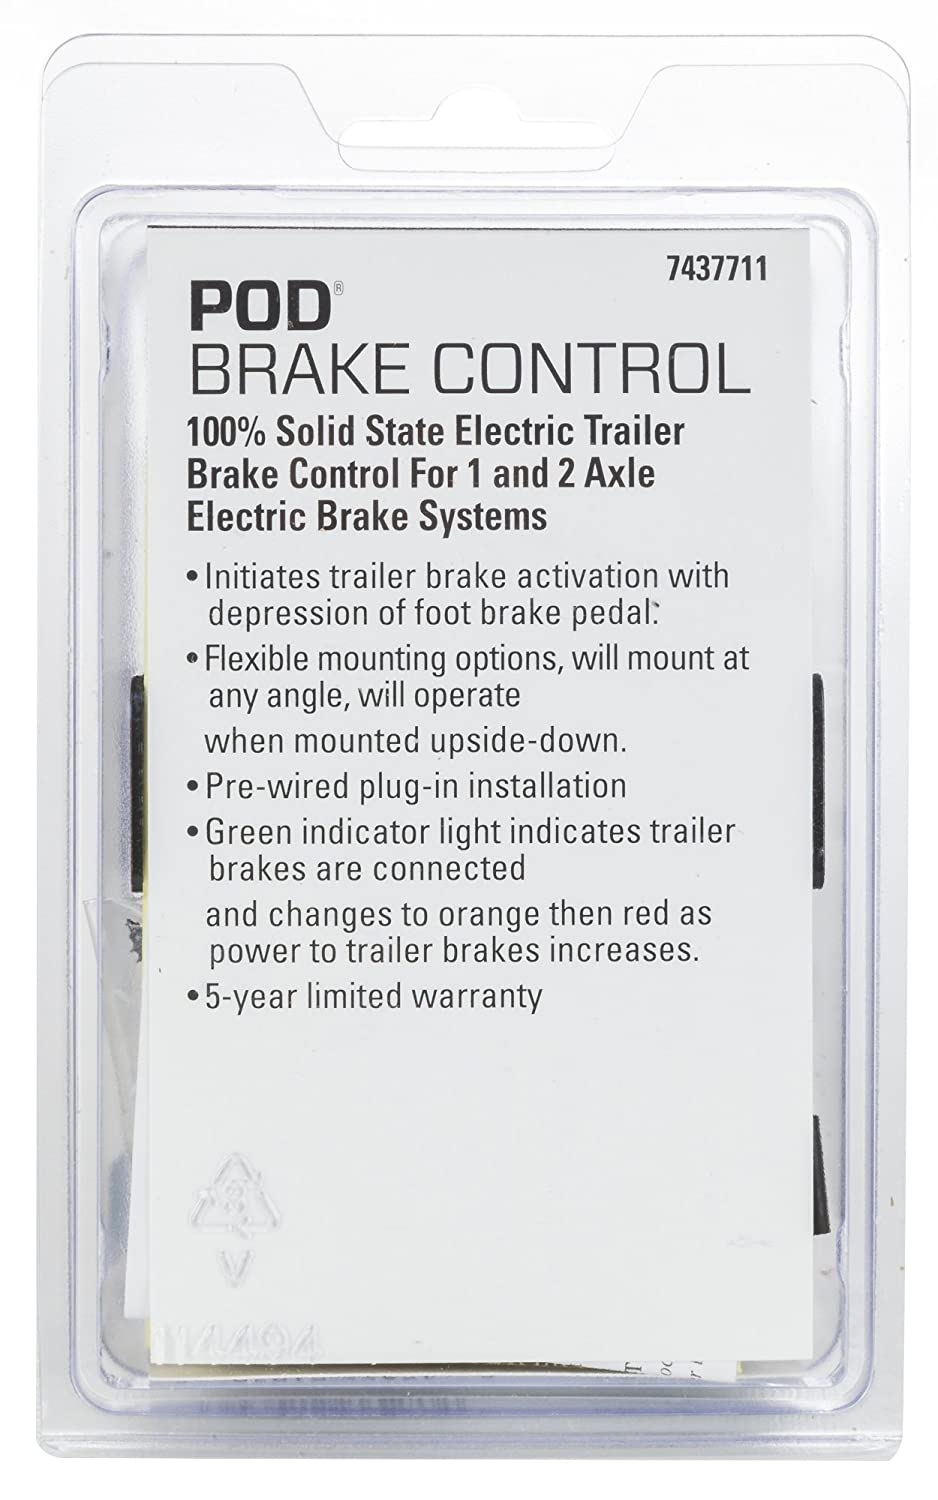 Reese Towpower 7437711 Pod Brake Control Automotive How To Hook Up Electric Trailer Brakes